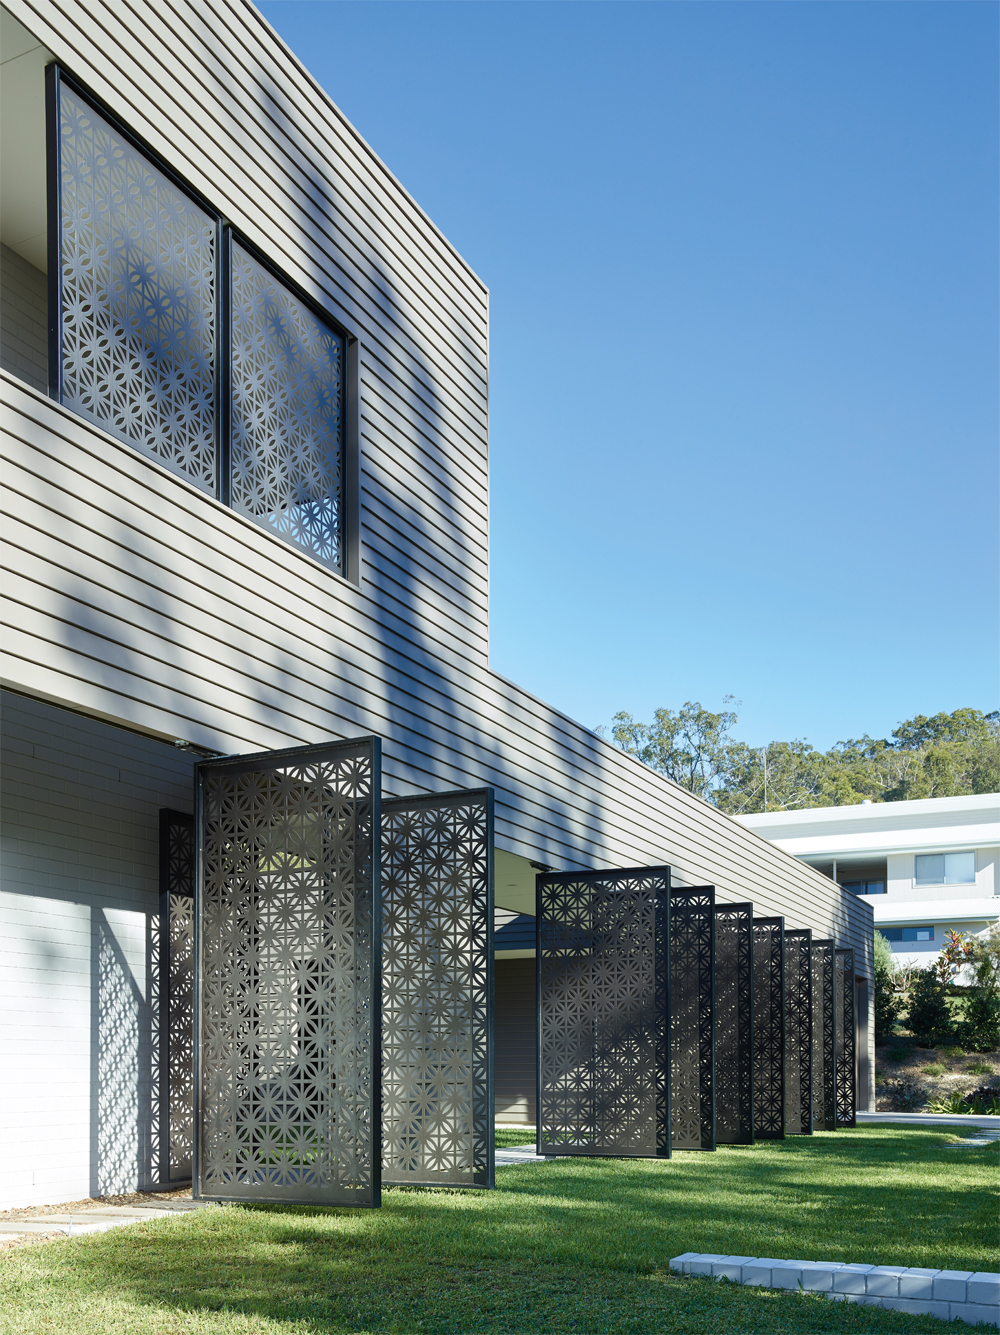 Grand Designs Australia: High Flyer - Architects' masterpiece - exterior: laser cut screens 4